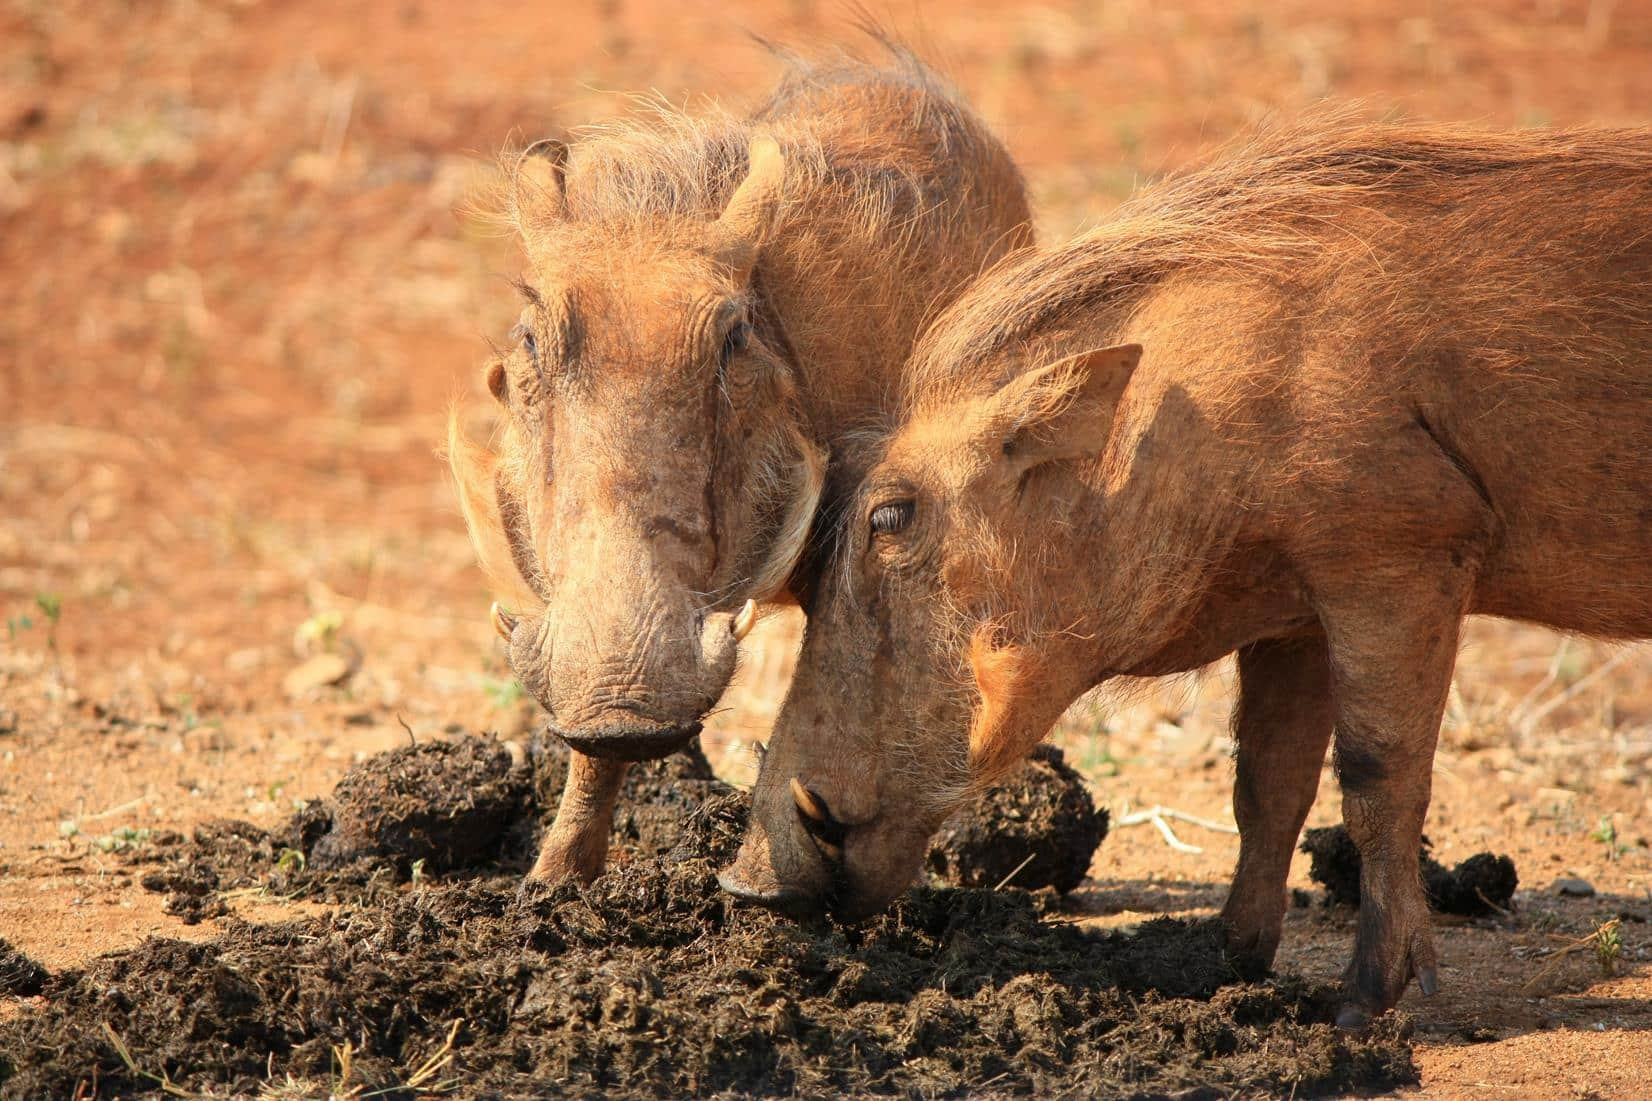 Warthog foraging for something edible in elephant dung.